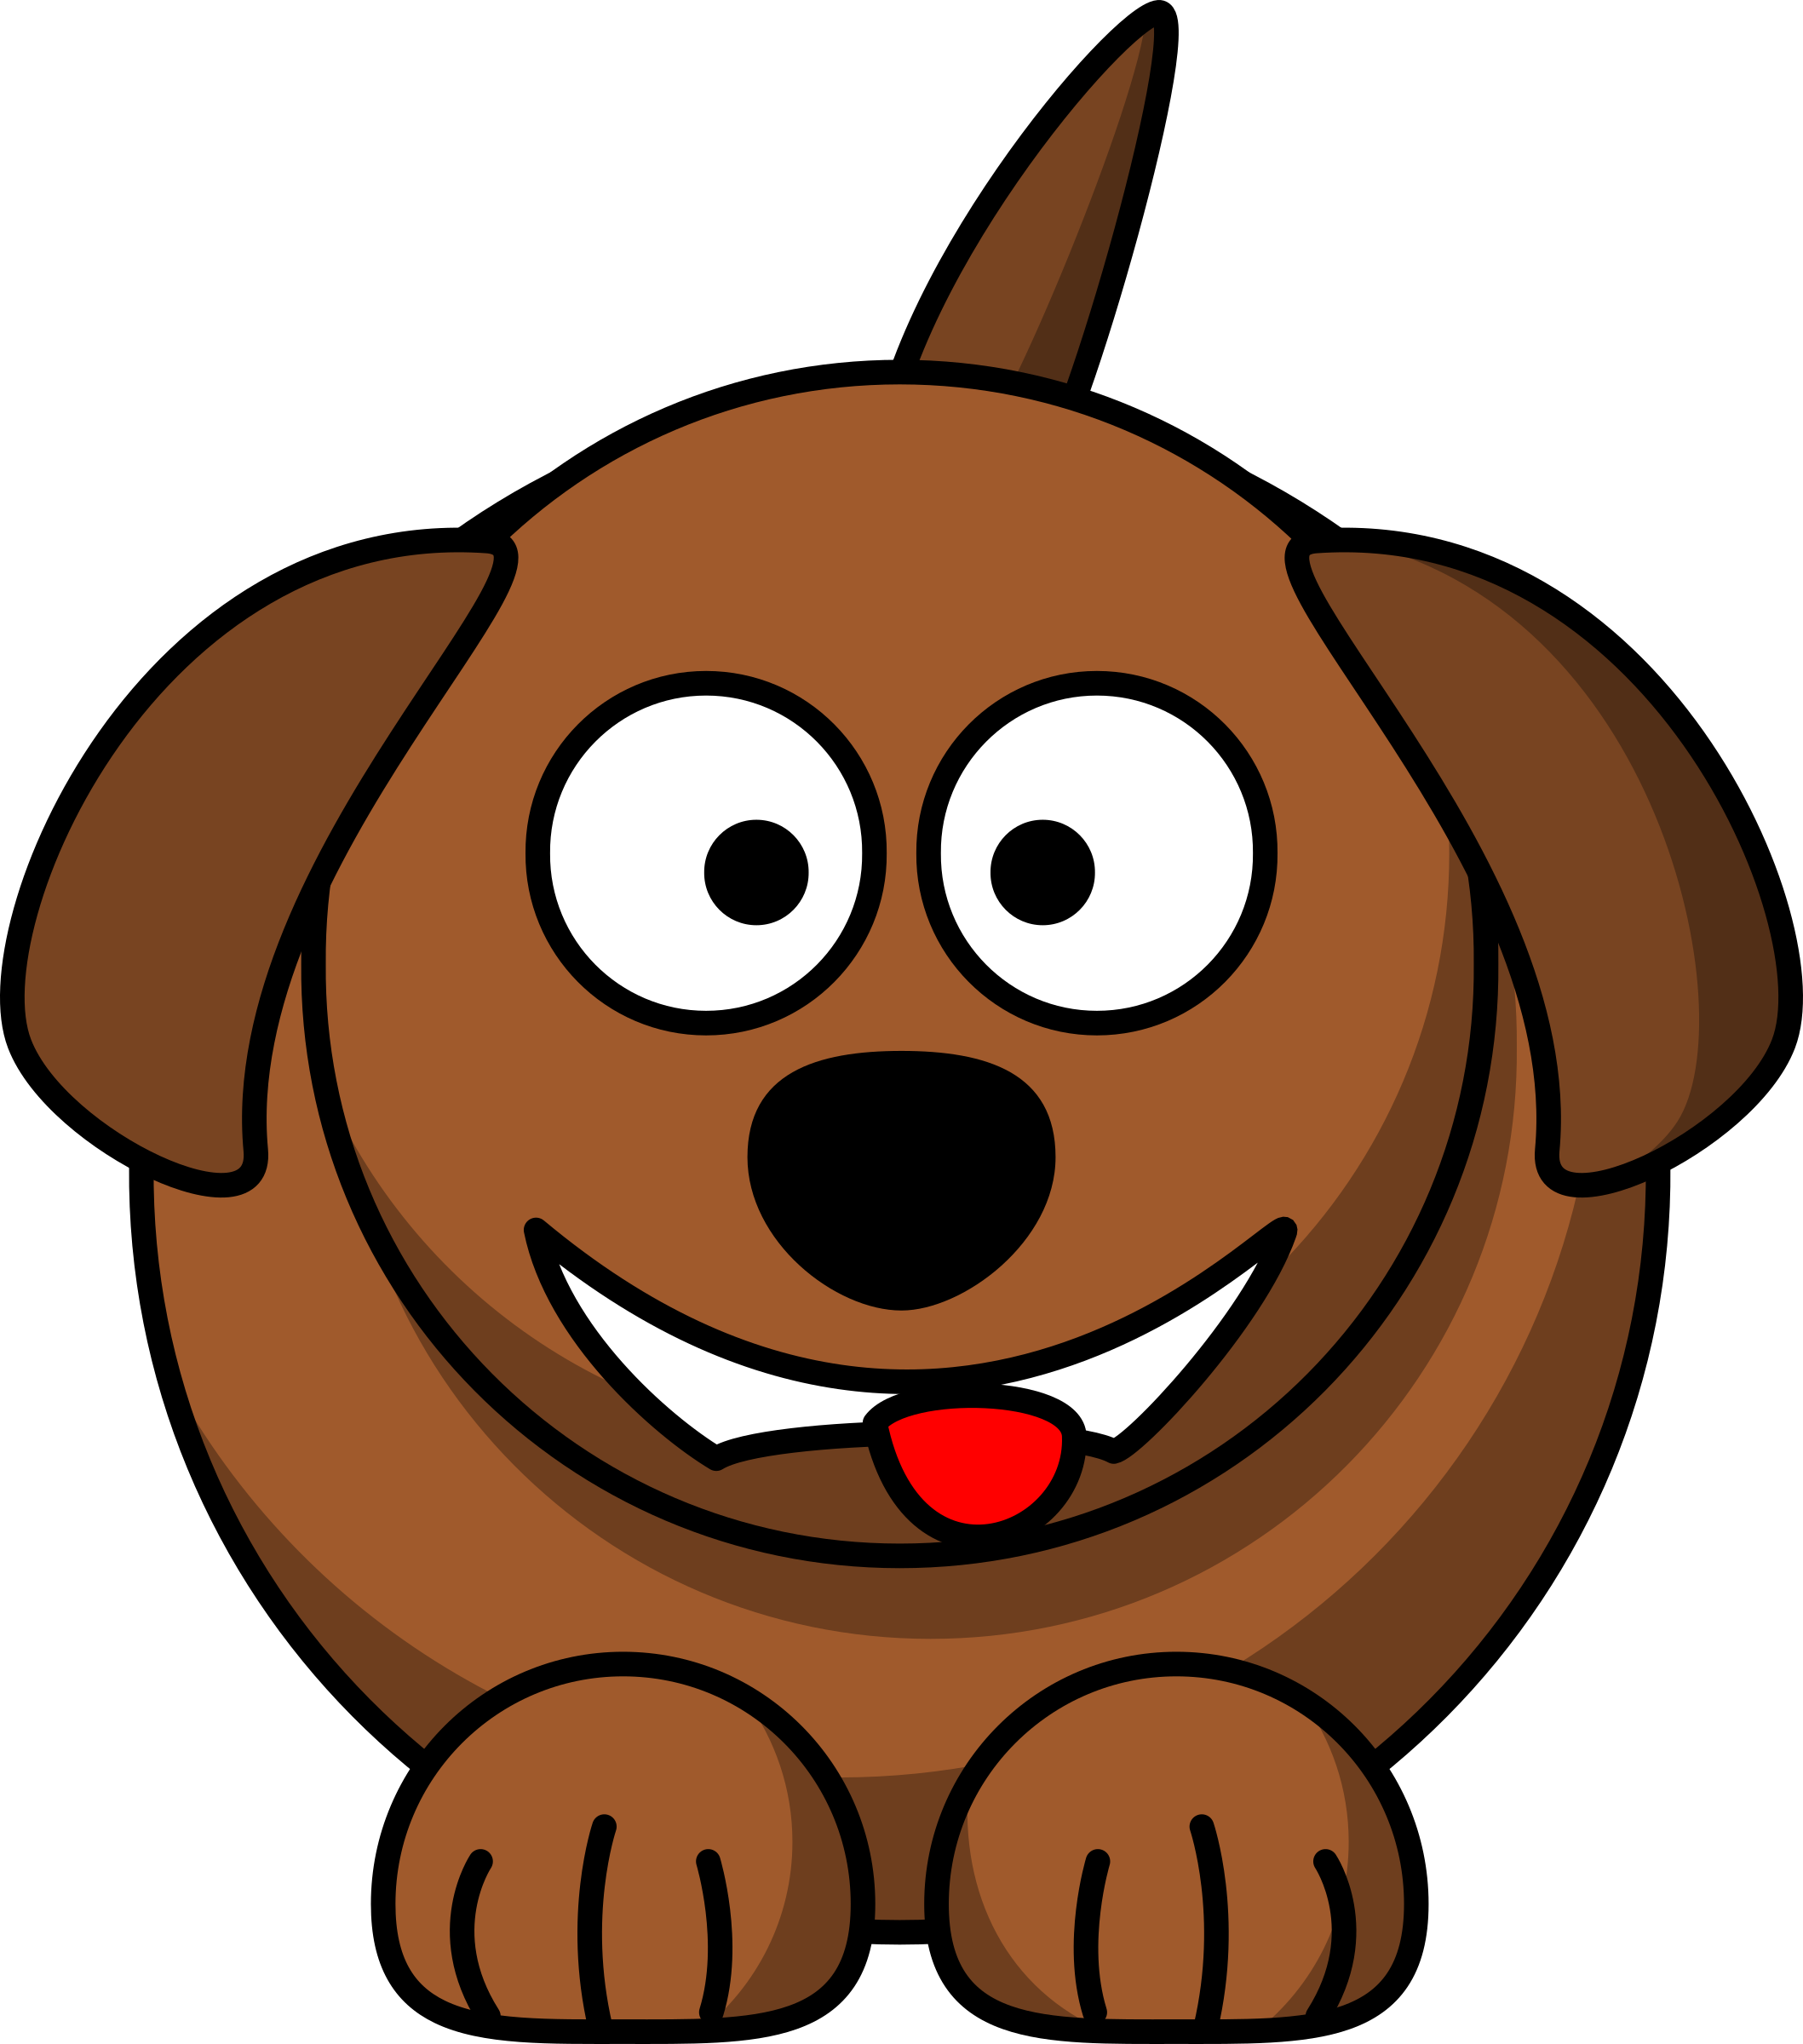 laughing dog clip art - photo #10